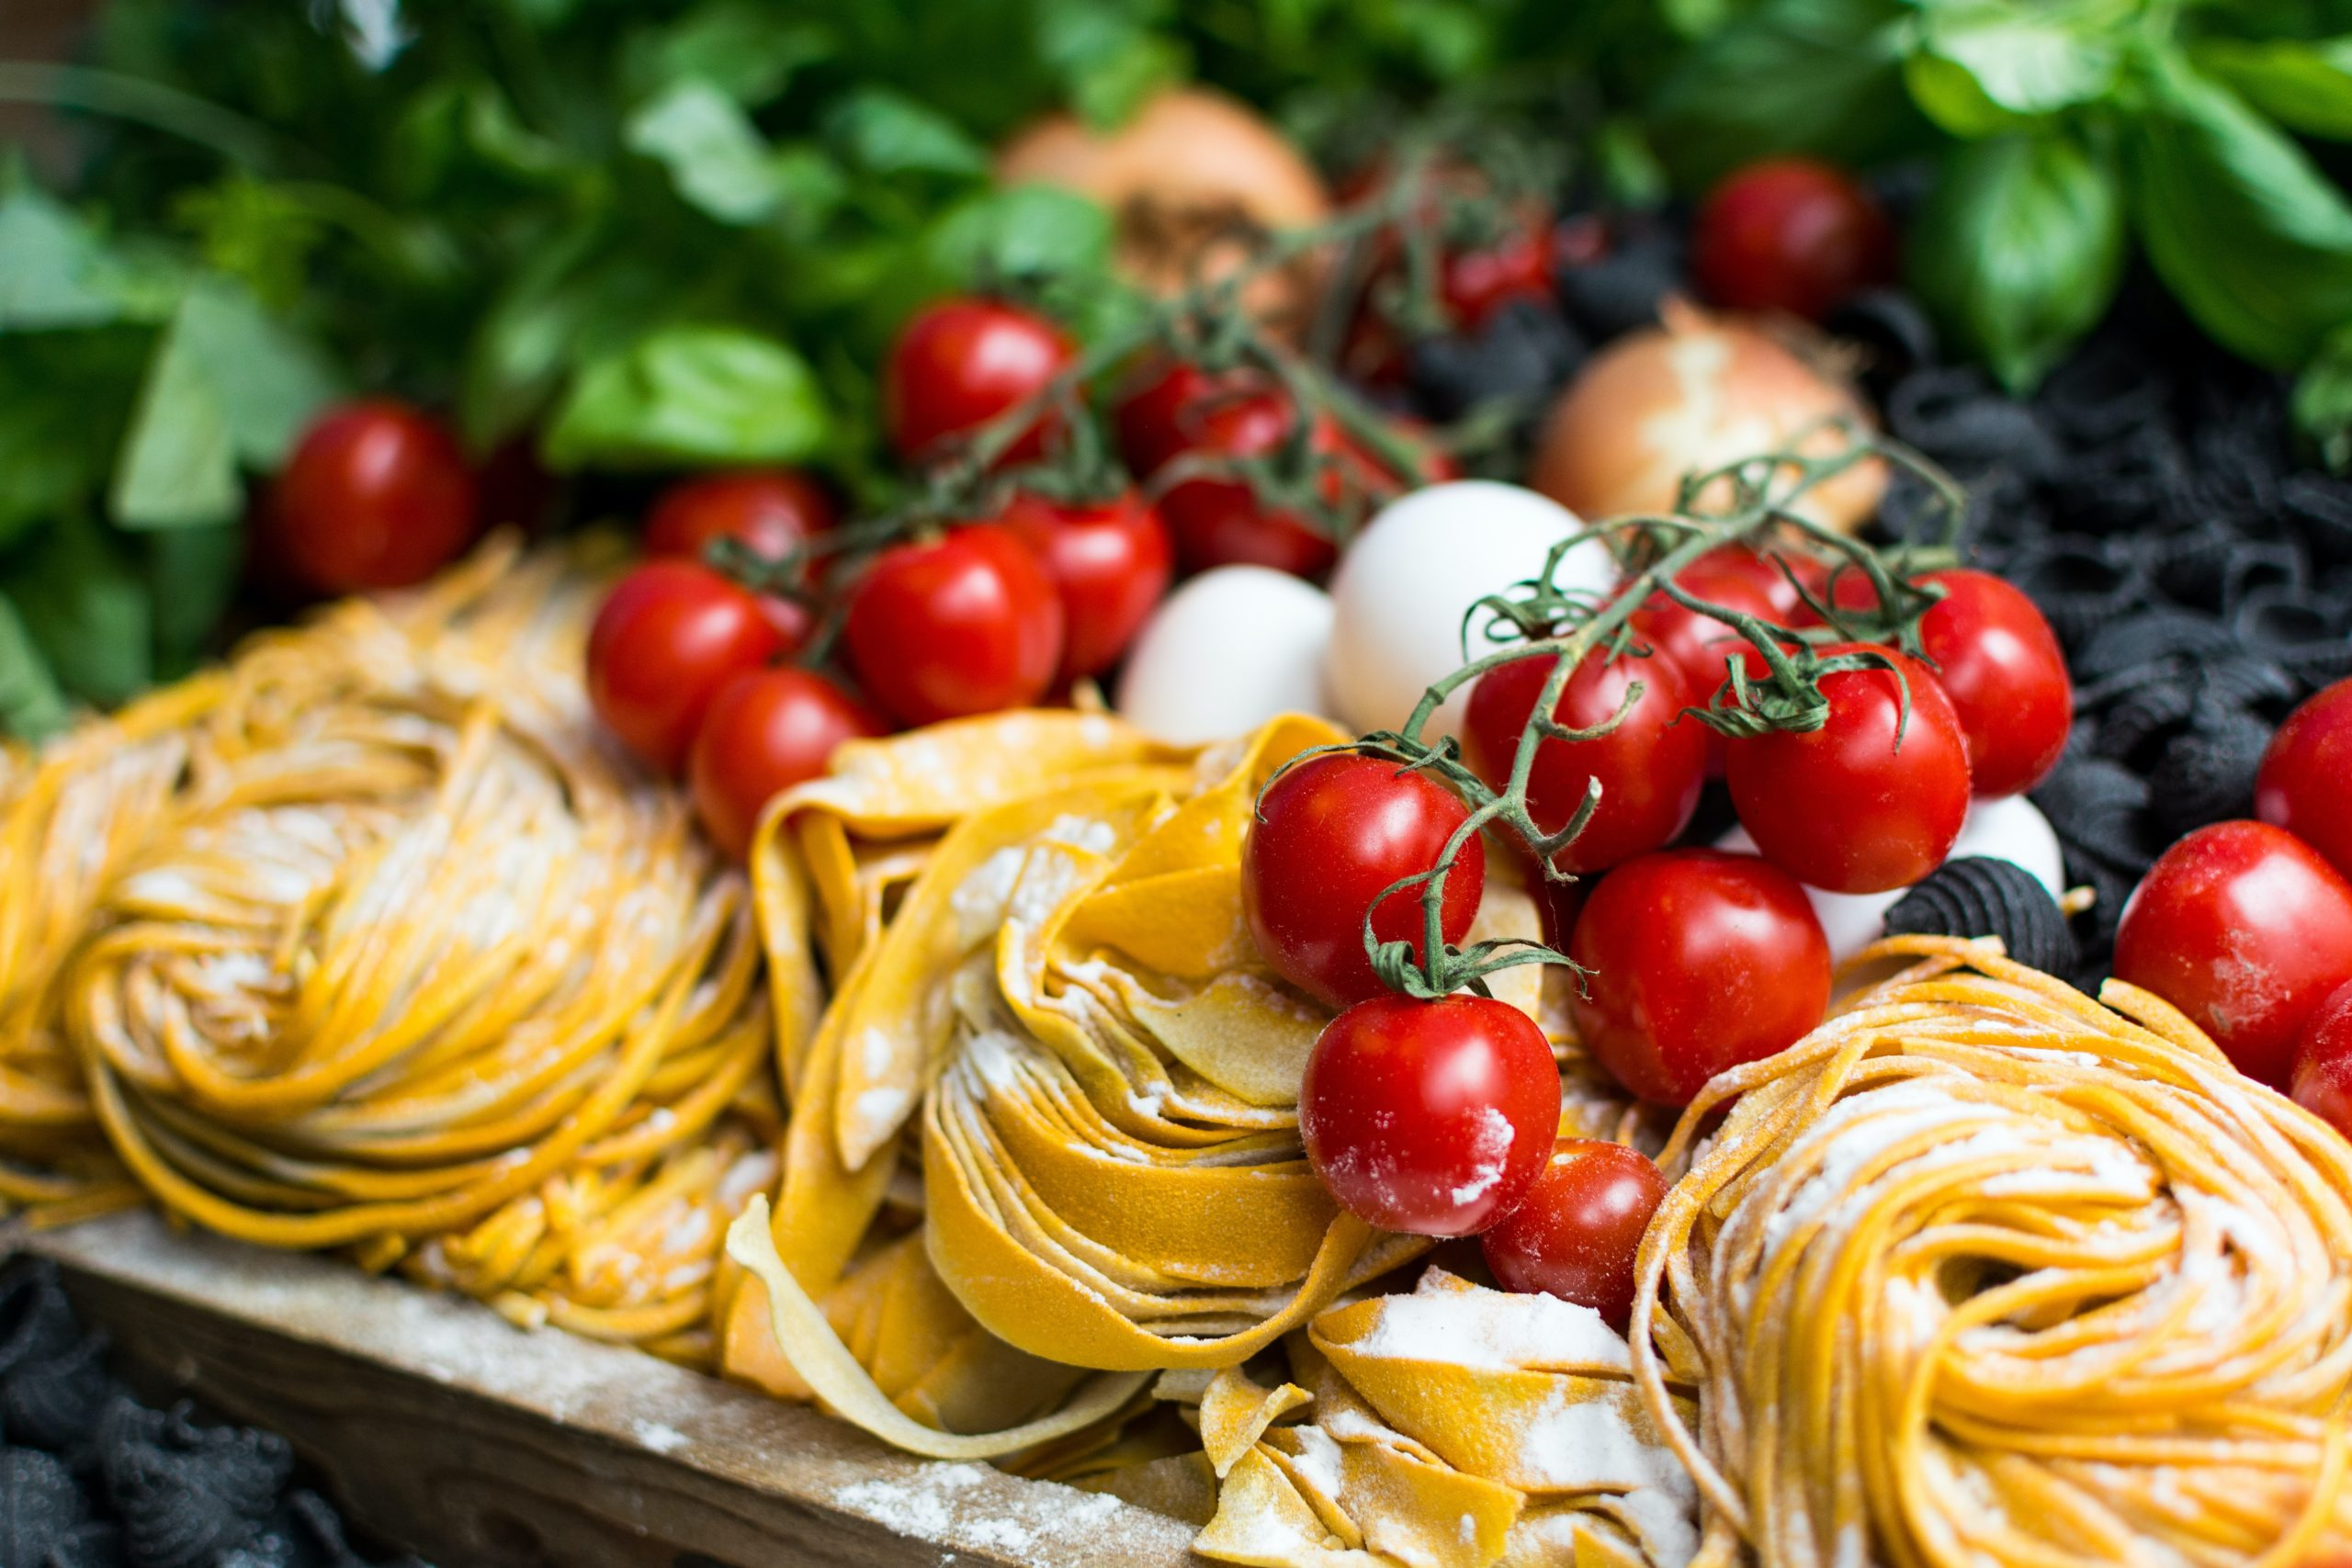 Mediterranean diet recipes to try for dinner tonight